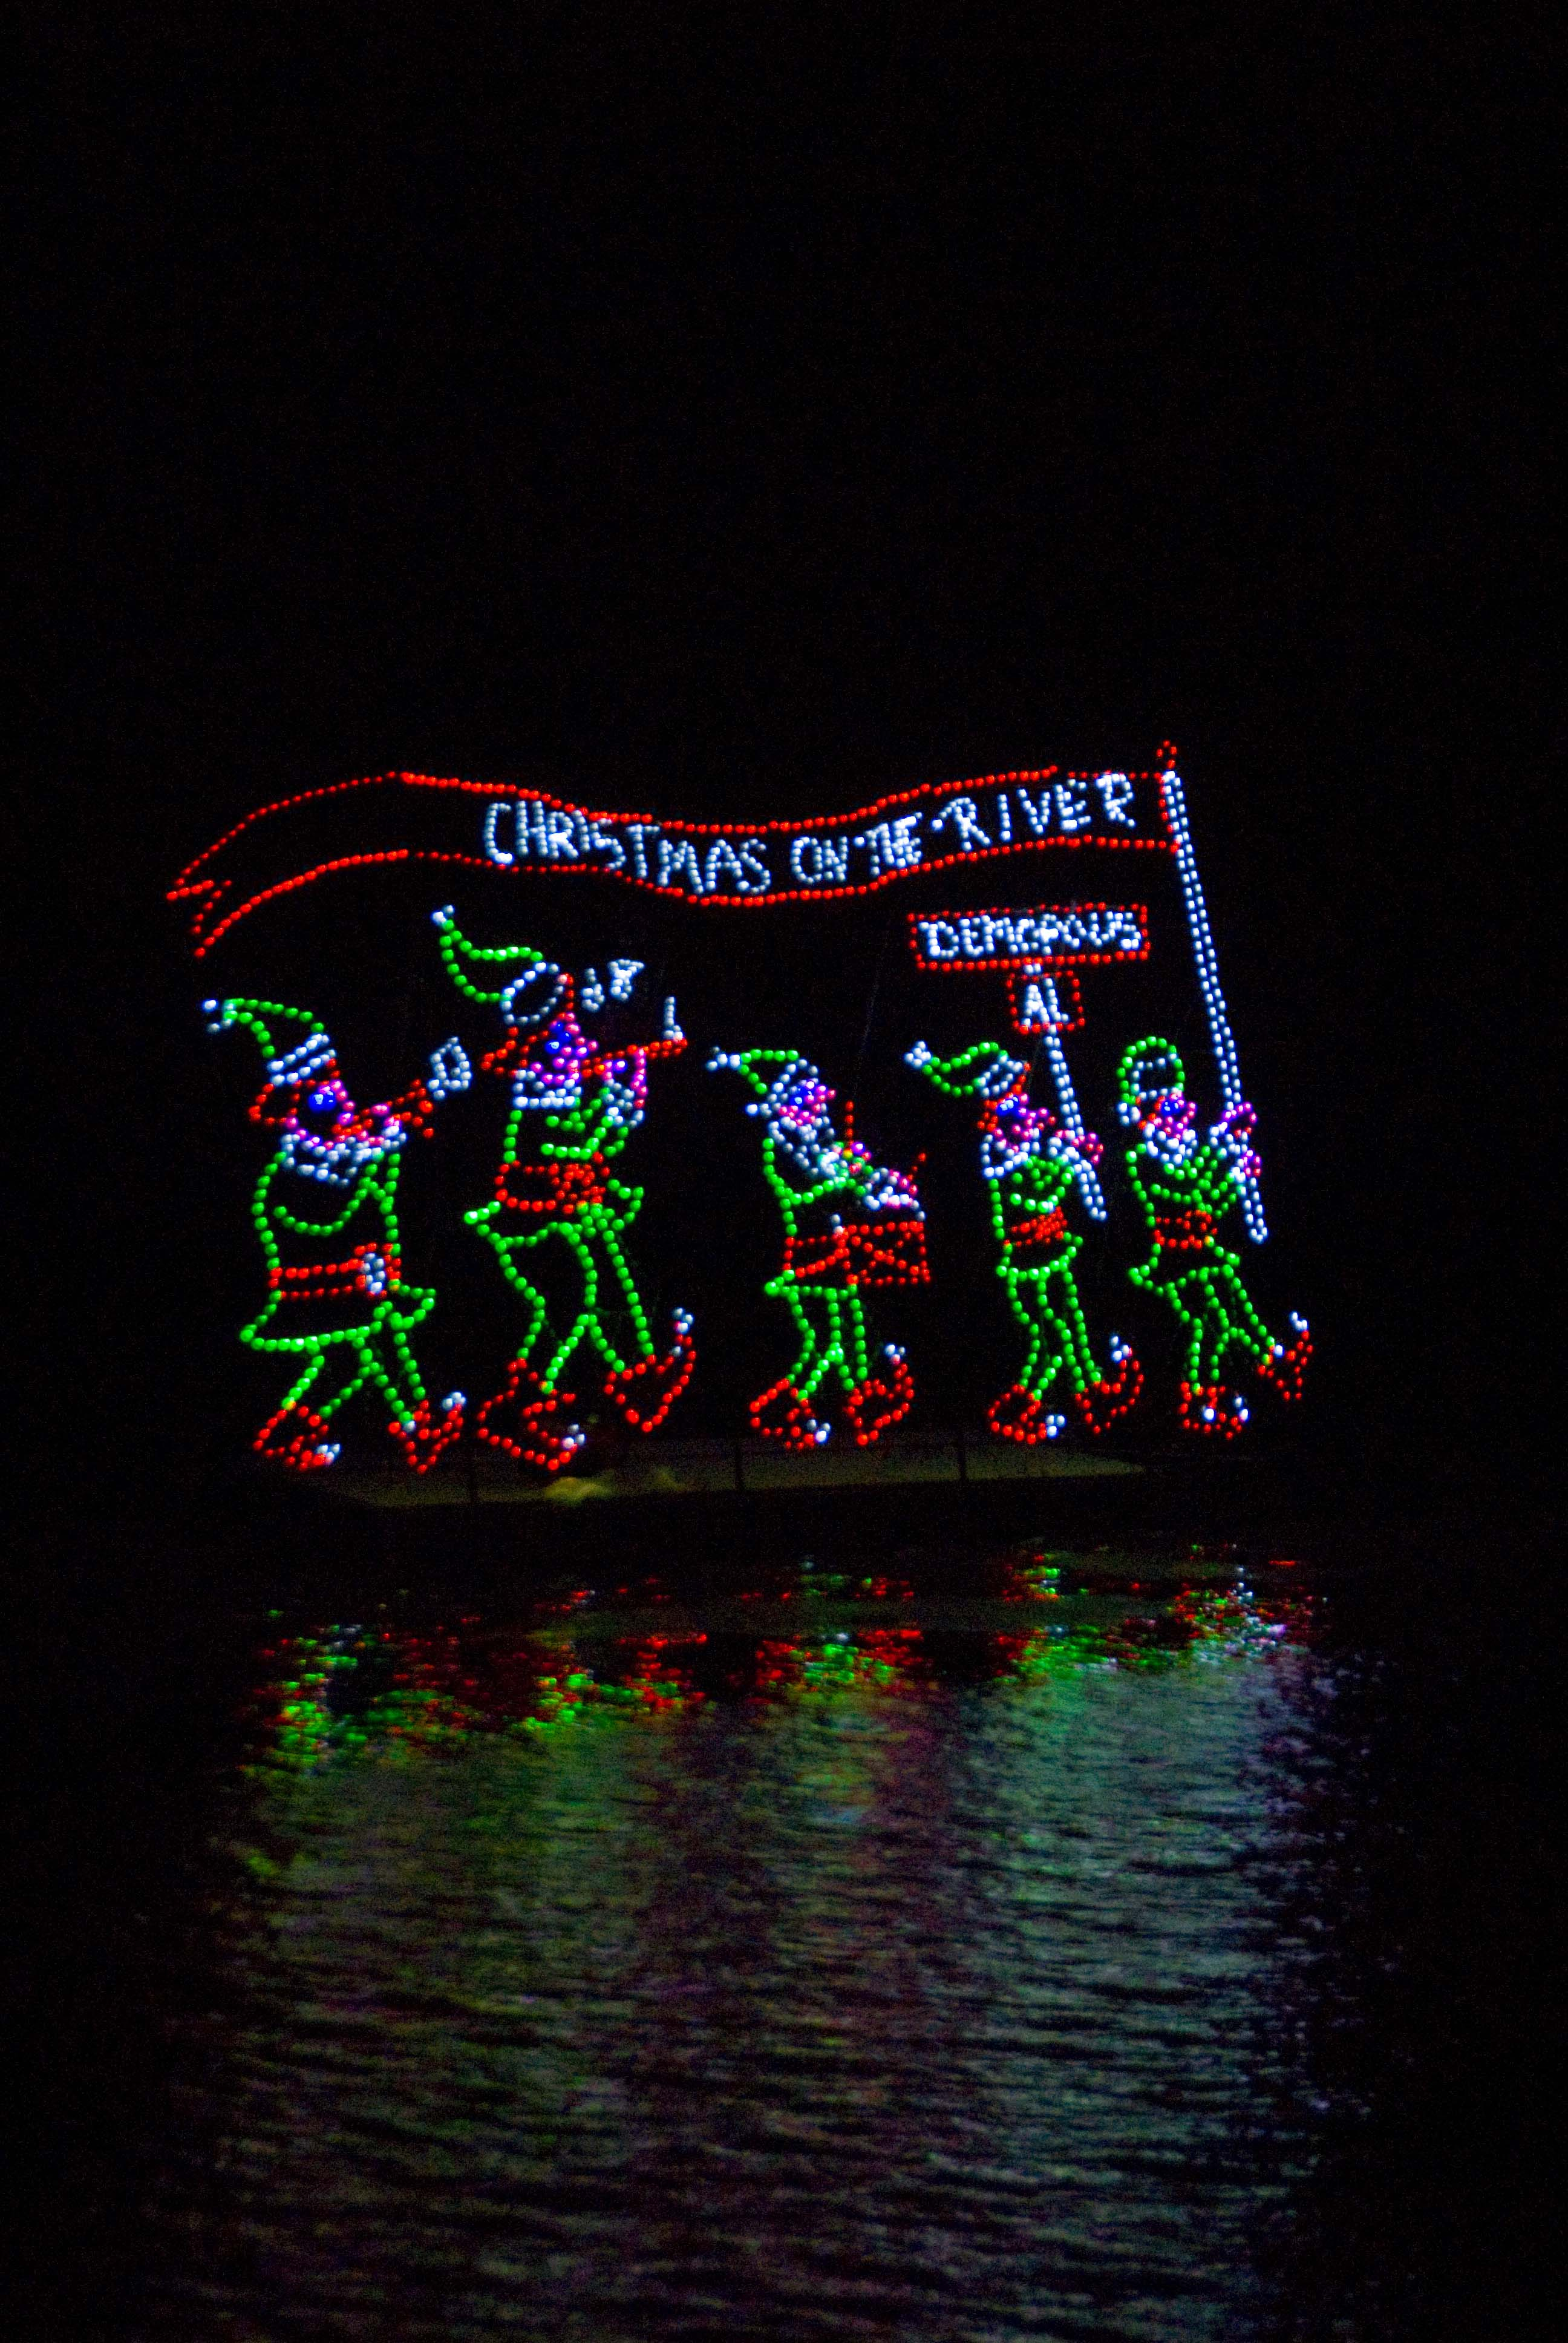 https://alabama-travel.s3.amazonaws.com/partners-uploads/photo/image/5f284db076ebfb0008230f2b/COTR Night Parade - elf float.jpg